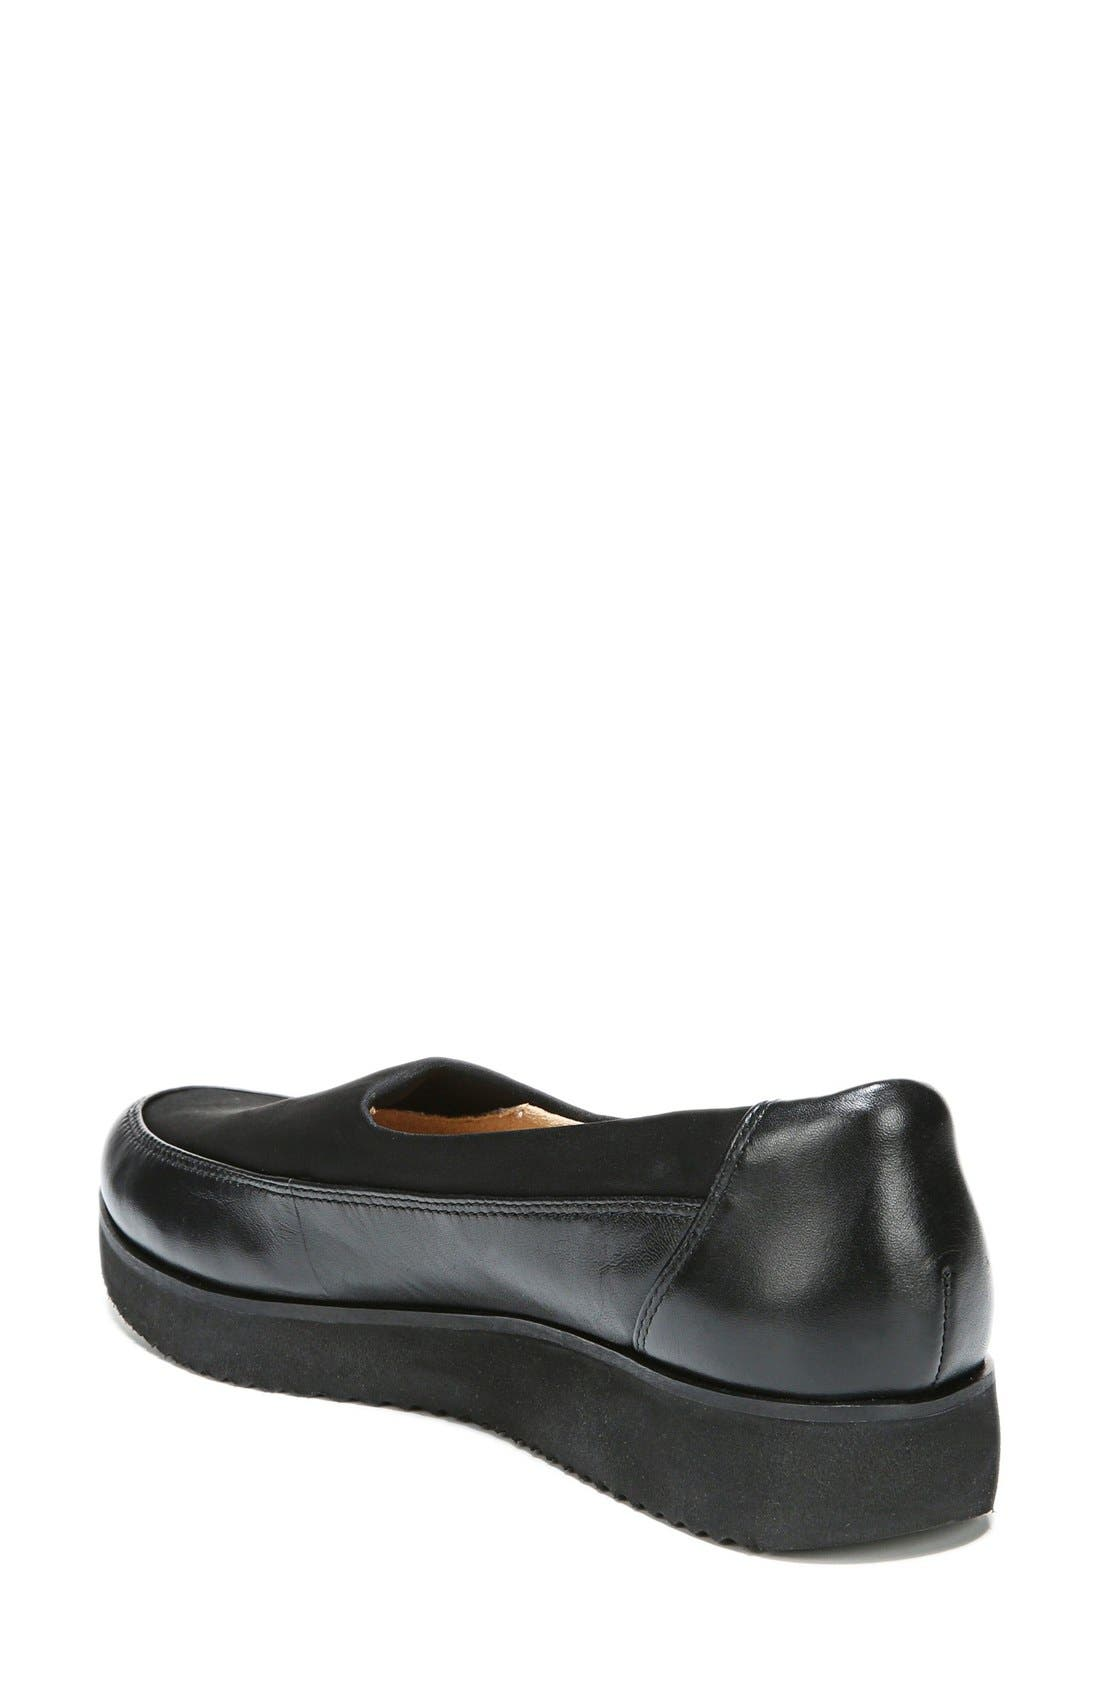 Alternate Image 2  - Naturalizer 'Neoma' Loafer (Women)